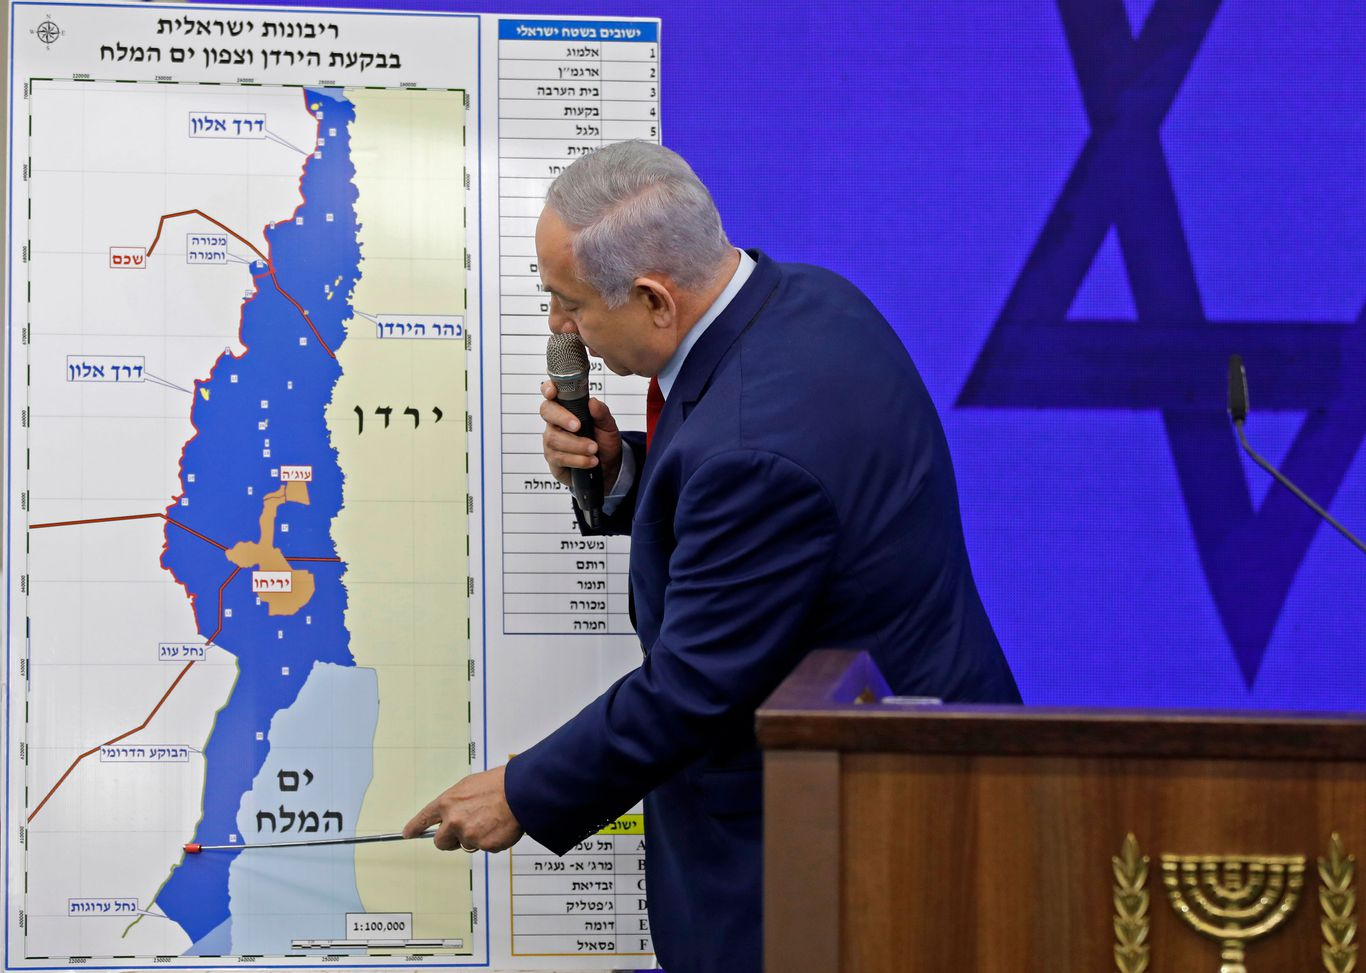 Netanyahu privately presents 4 plans for West Bank annexation thumbnail